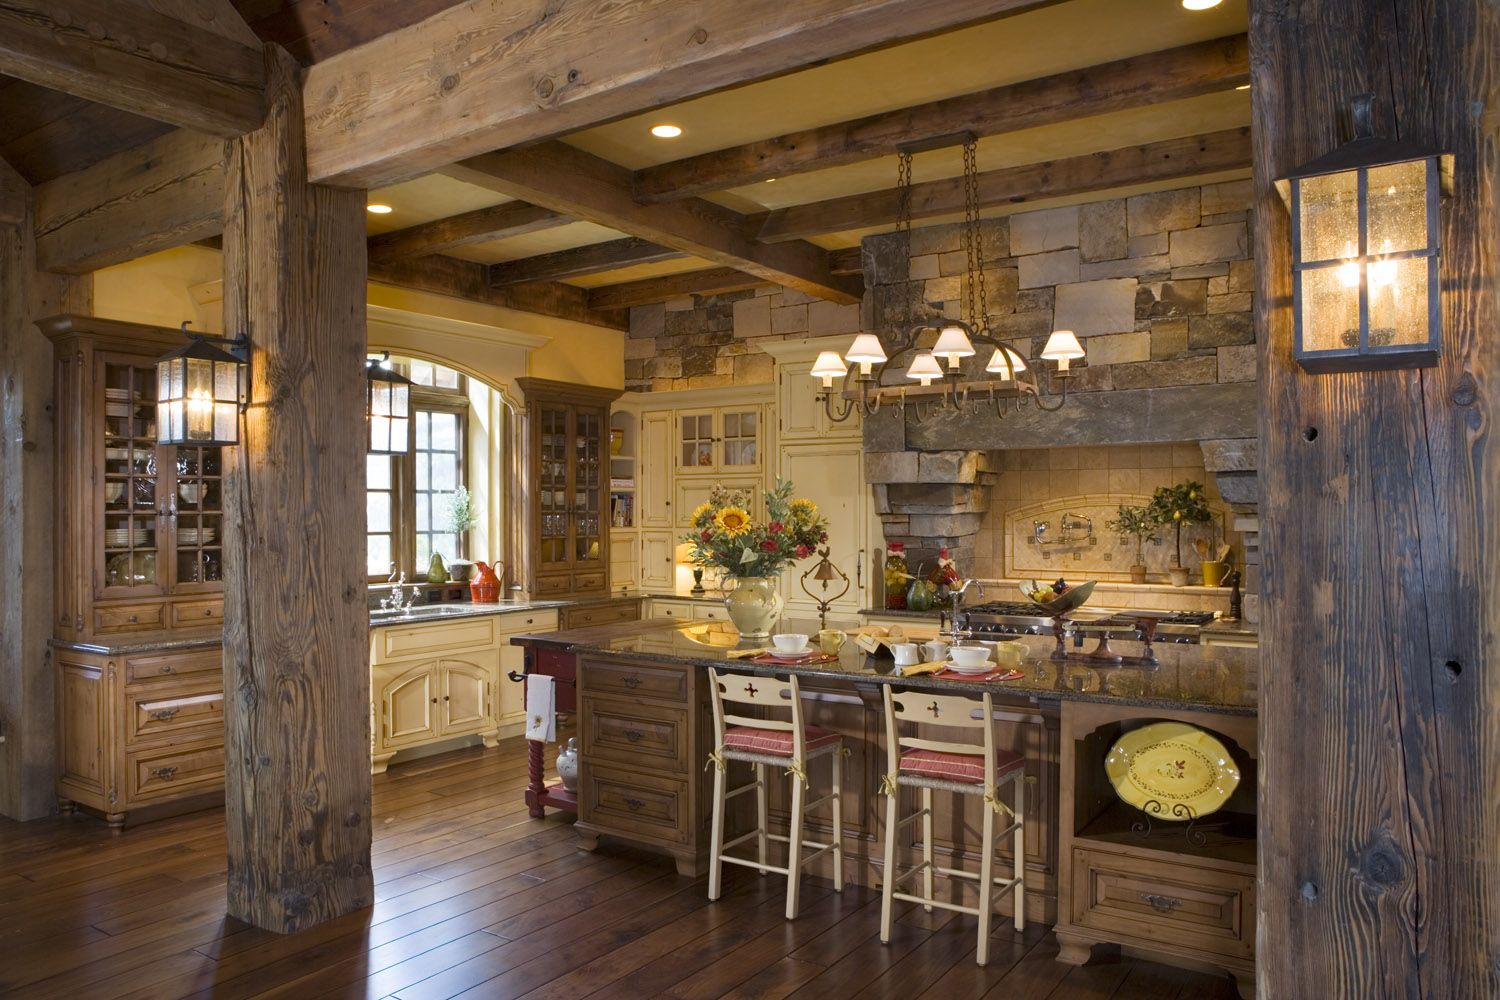 Rustic timber posts, wall sconces, wood floor, beam